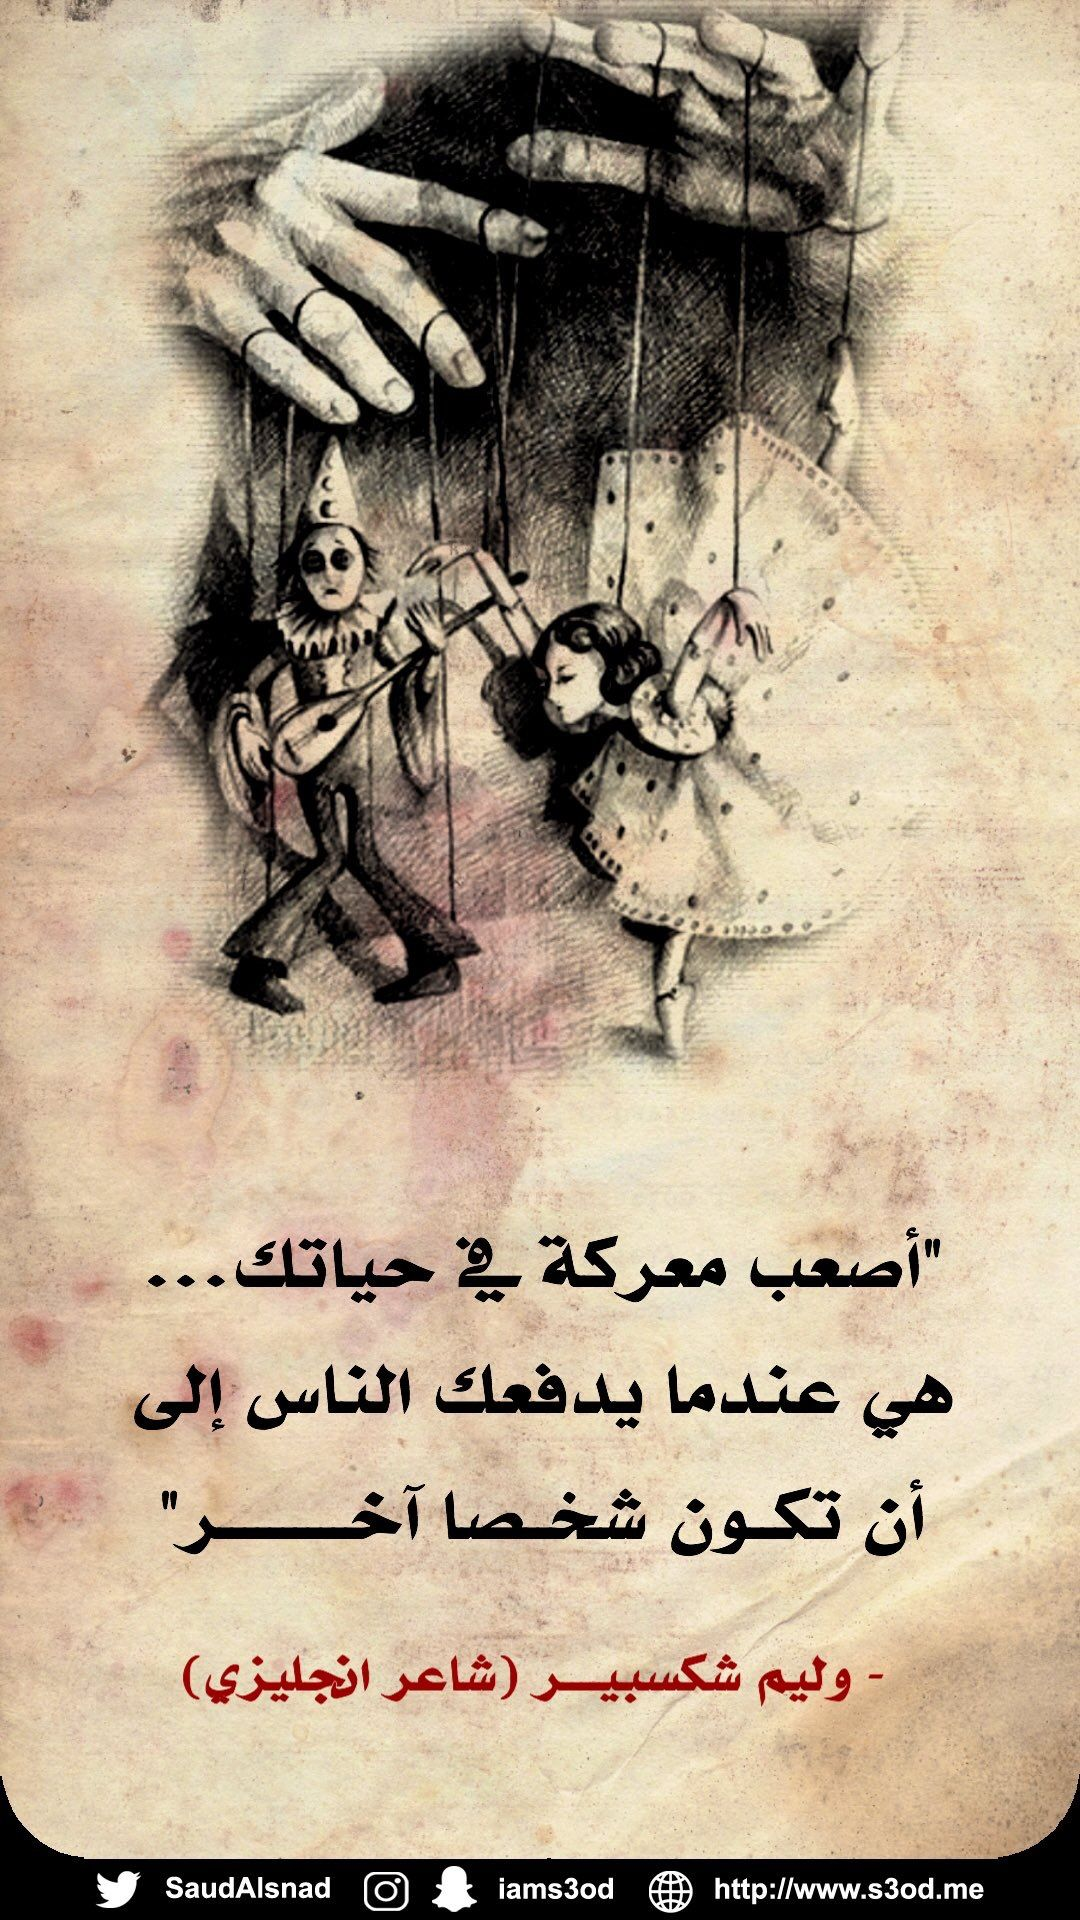 Pin By Mais Samhouri On قسم الأدب سوق عكاظ Movie Posters Quotes Movies